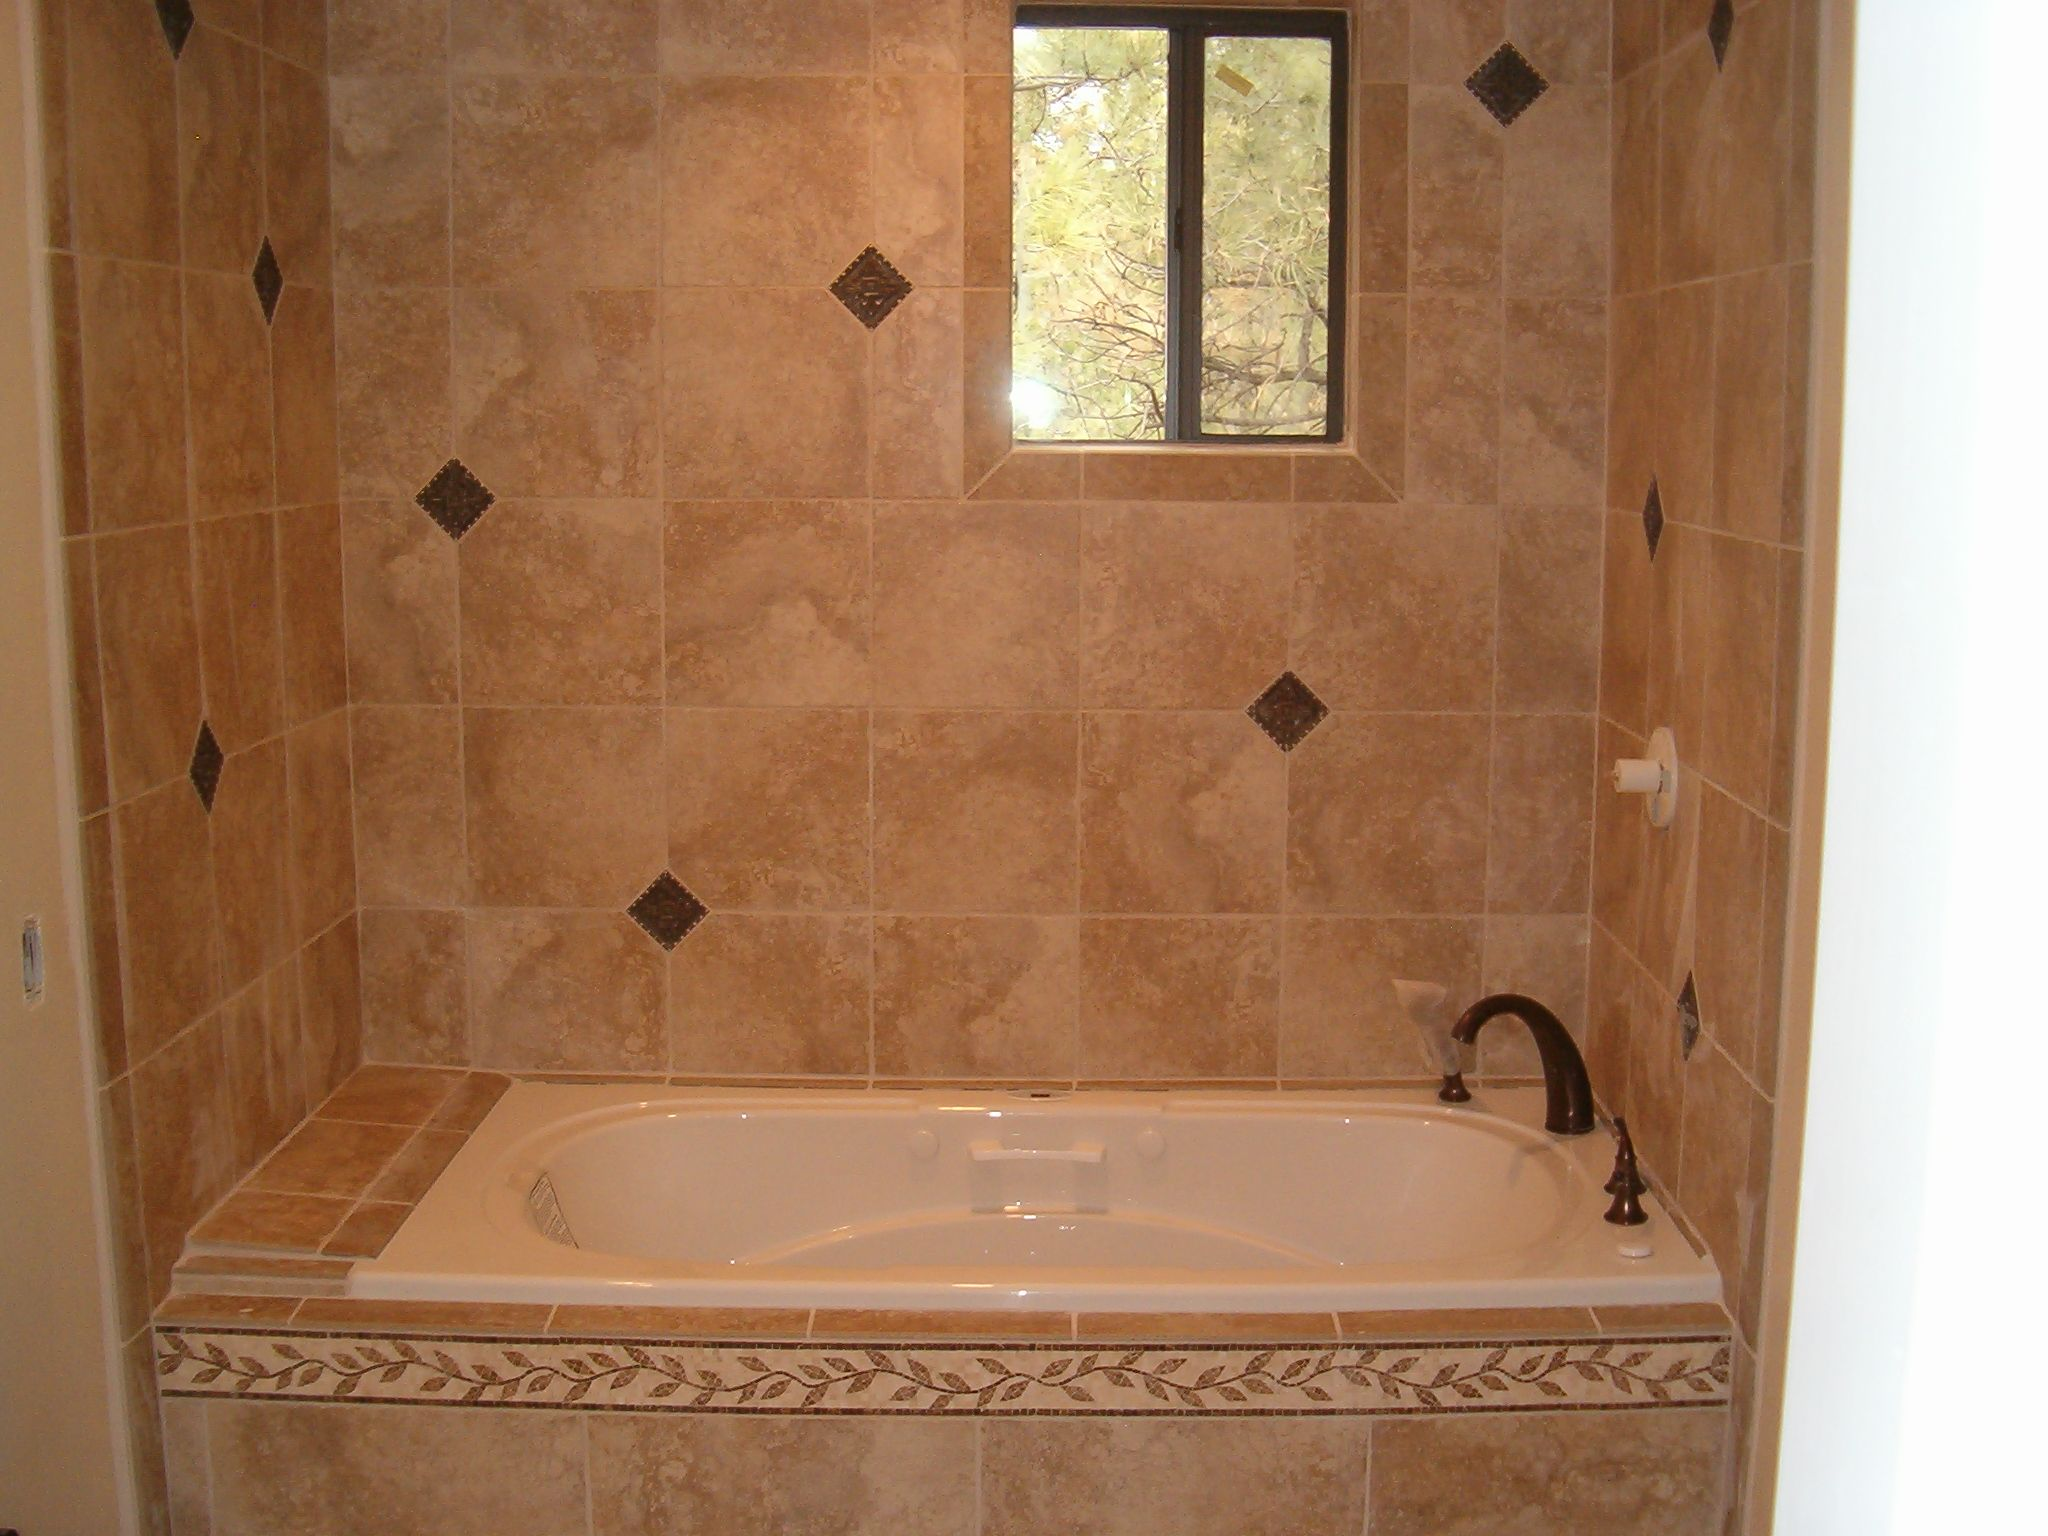 Remarkable Tile Floor Images All Around Floorings Bathroom Tub Diamond Largest Home Design Picture Inspirations Pitcheantrous